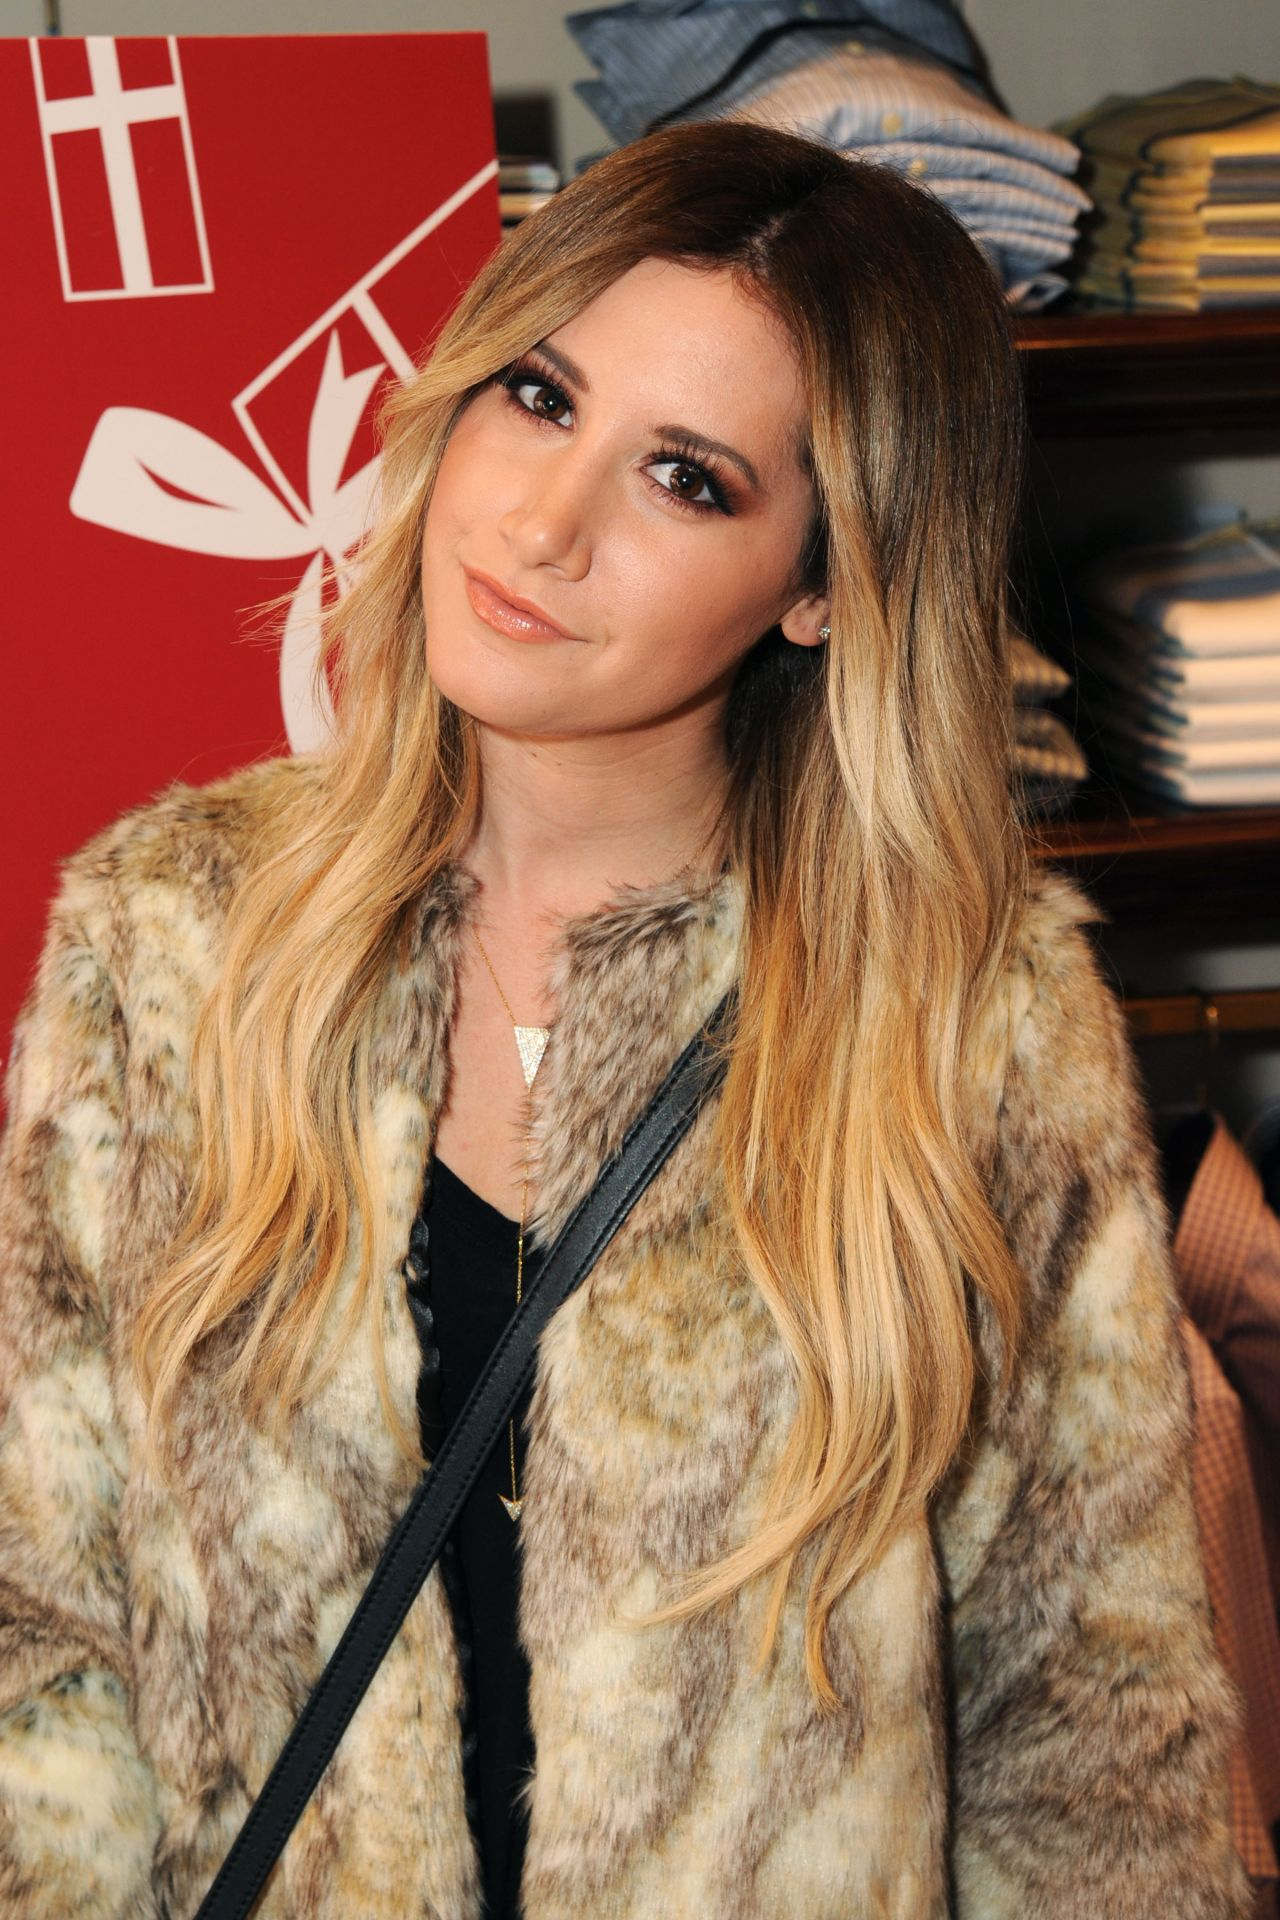 ashley tisdale dating 2014 Ashley tisdale questions including does miley cyrus like ashley  are scott speer and ashley tisdale dating  onseptember 30, 2014, ashley gave birth to the .